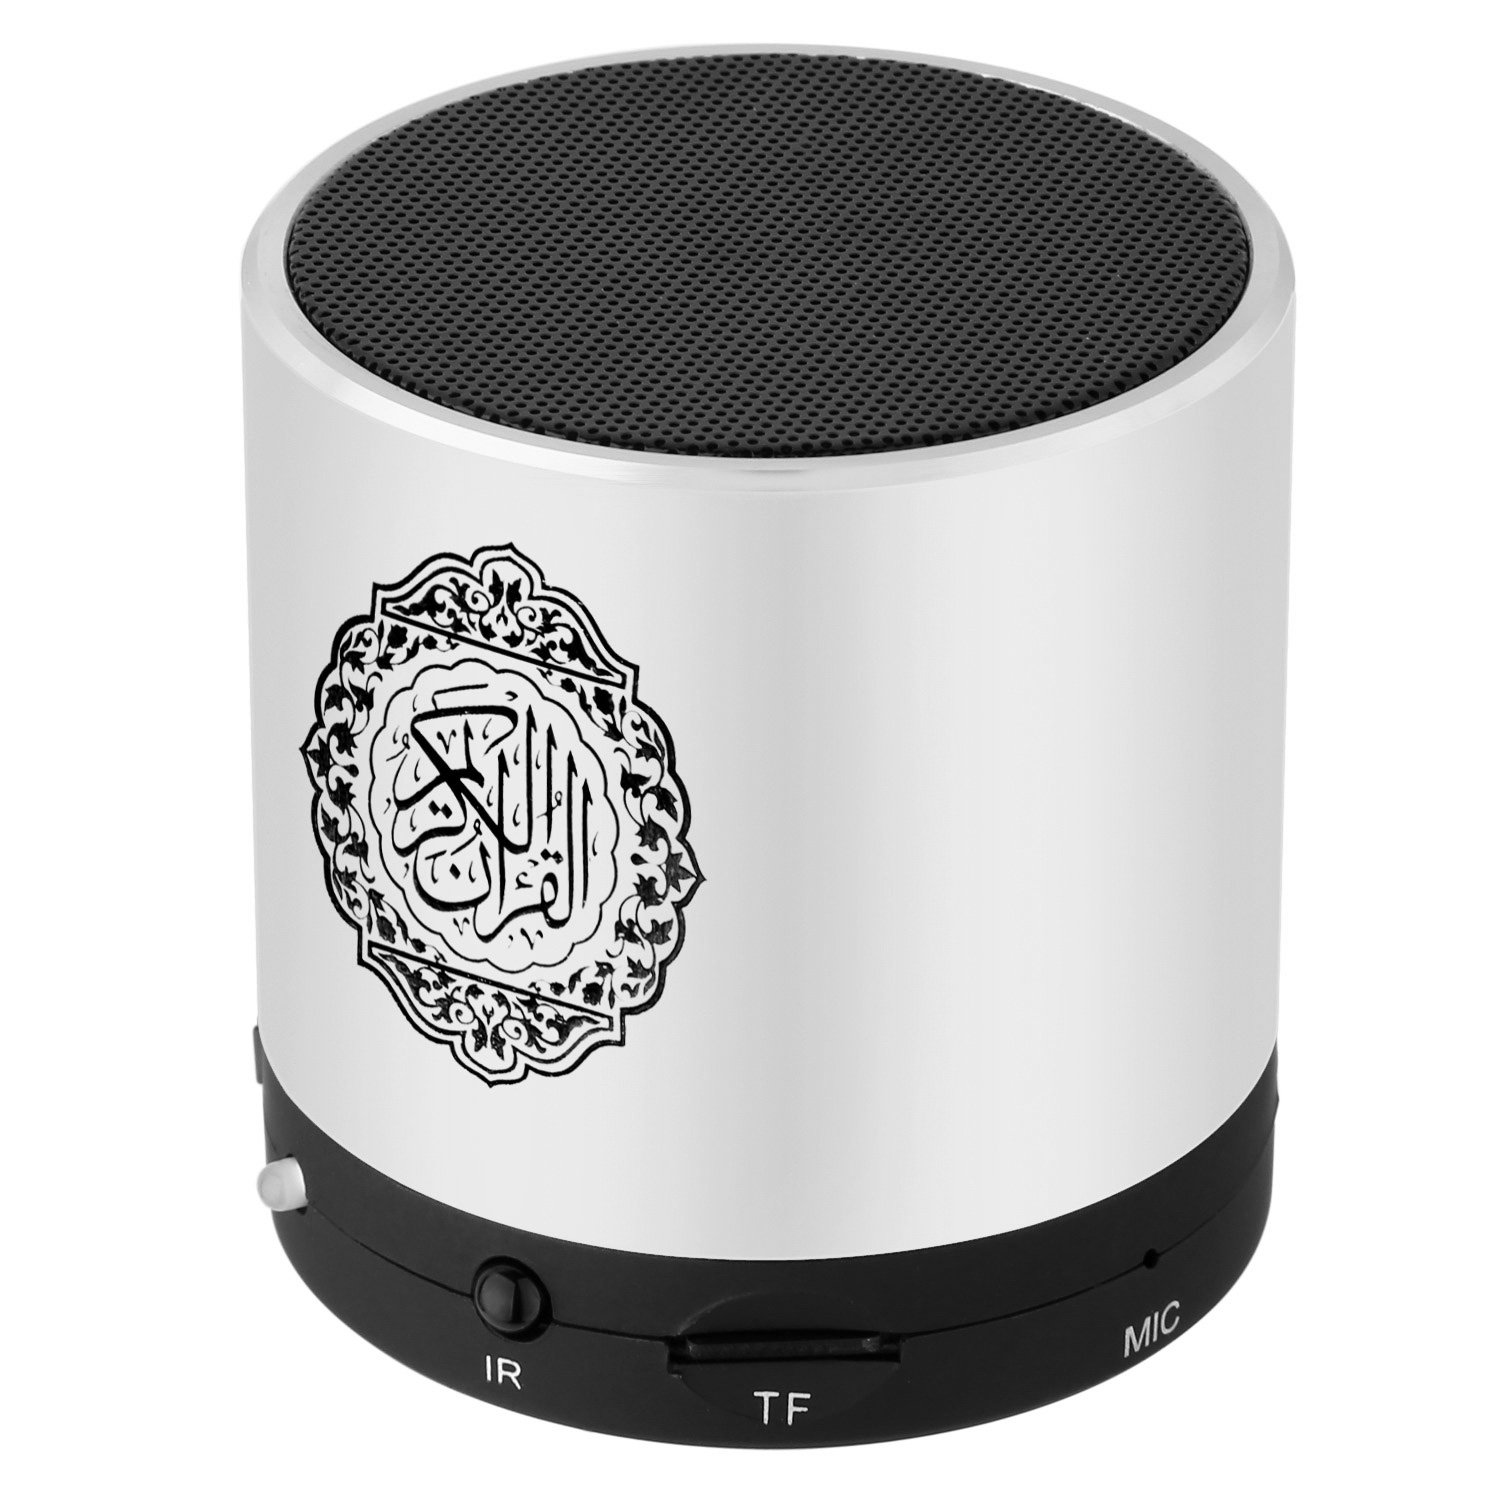 Hitopin Digital Quran Speaker FM Radio Silver Color with Remote Control Over 18Reciters and15 Translations Available Quality Qur'an Player Arabic English French, Urdu etc Mp3 by Hitopin